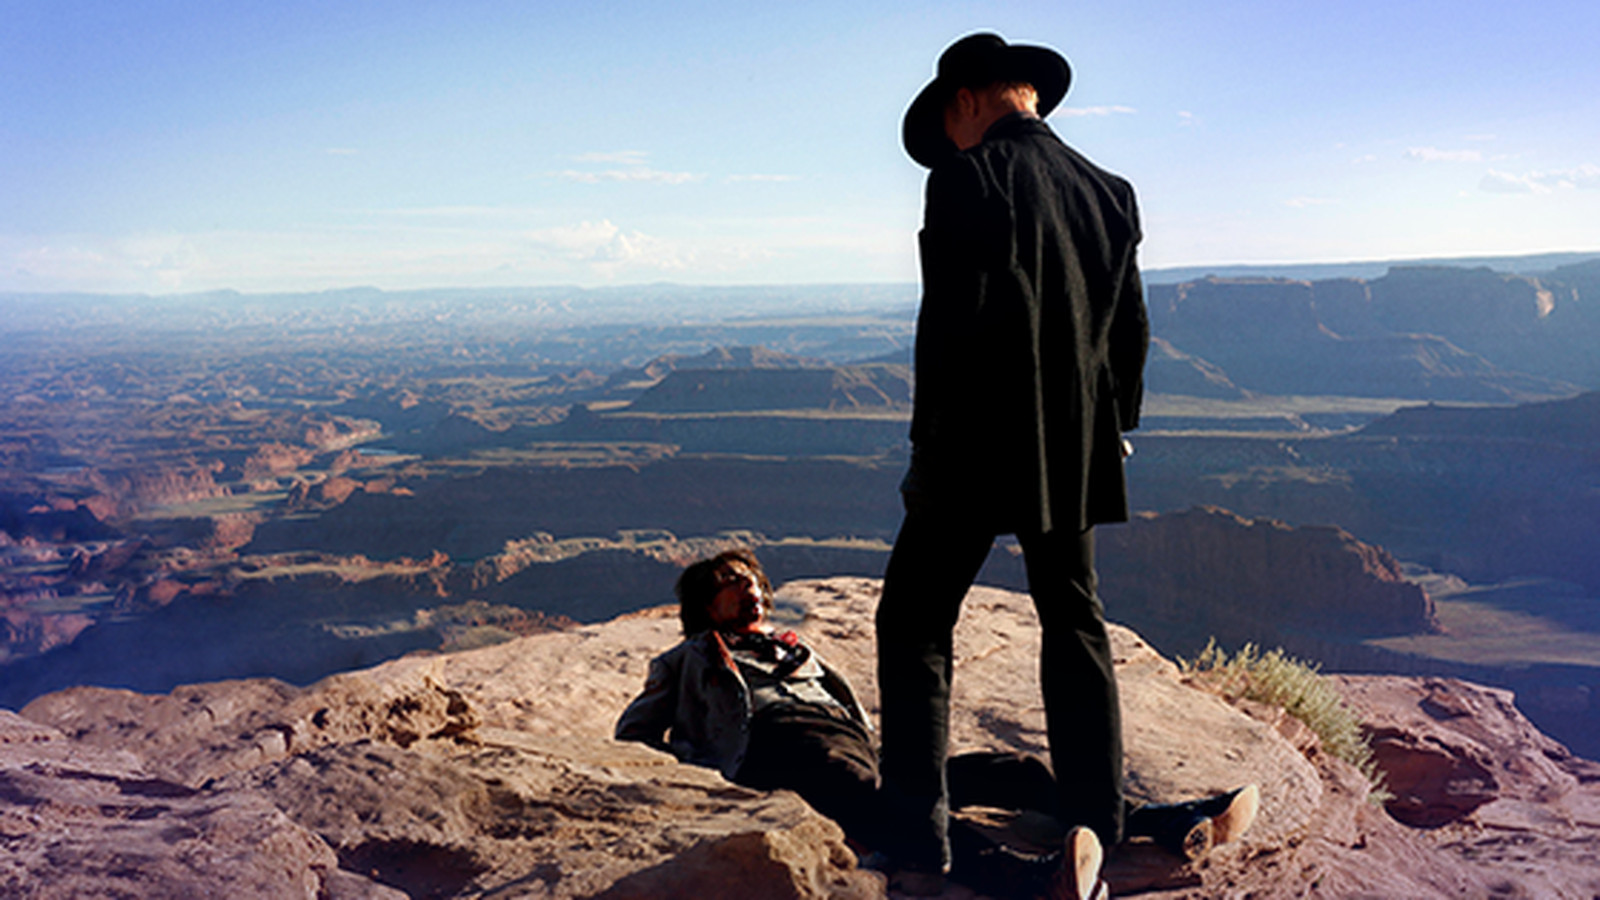 Heres The First Look At Westworld HBOs Sci Fi Western